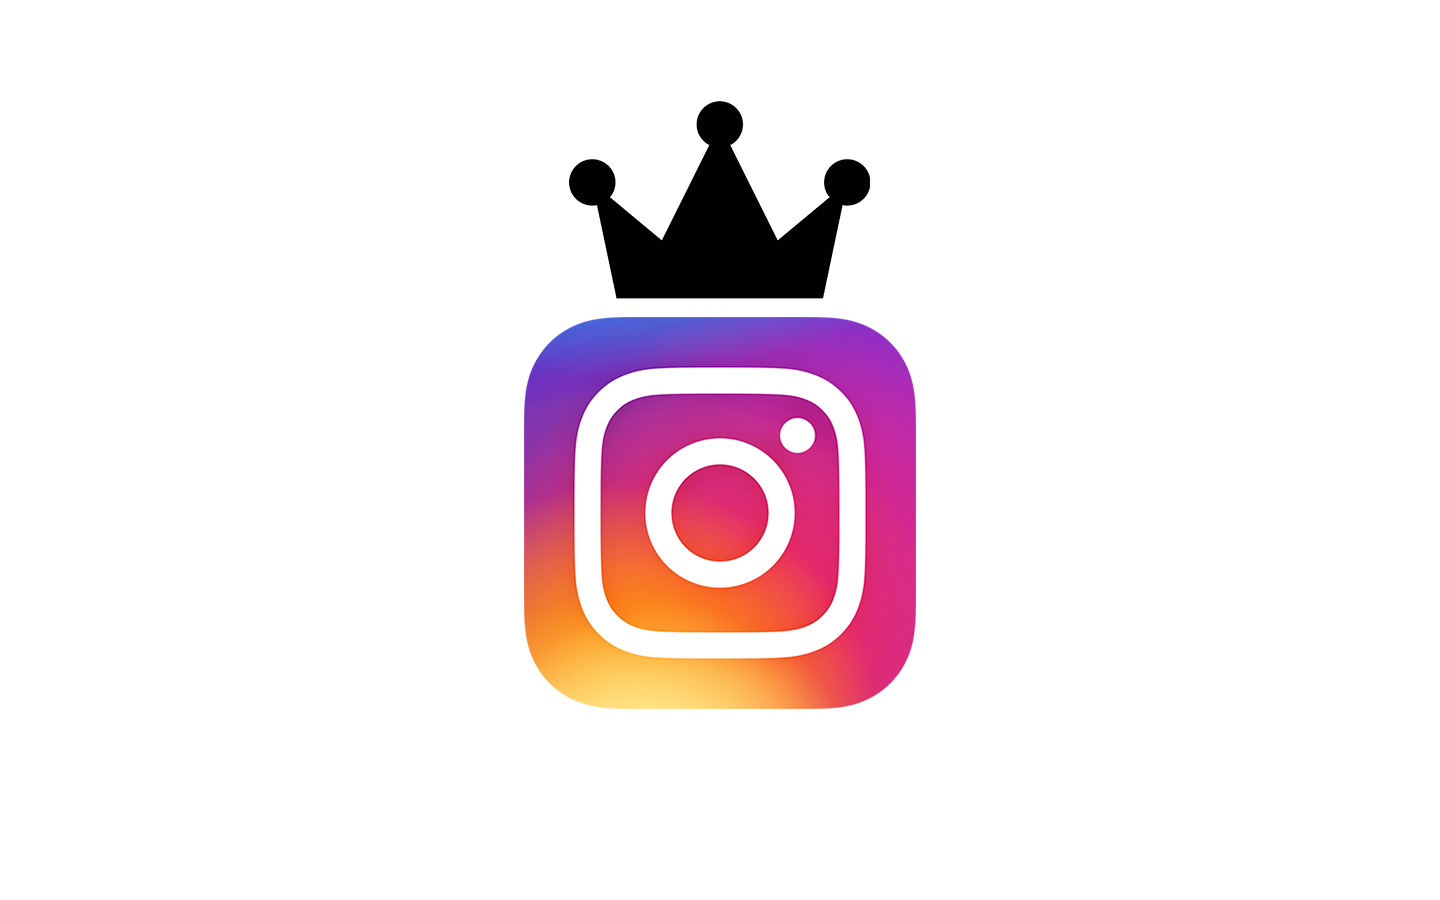 blogssocial-media-in-2018-wat-speelt-erde-aanstormende-koning-instagram-visual-8095-636686467150000000